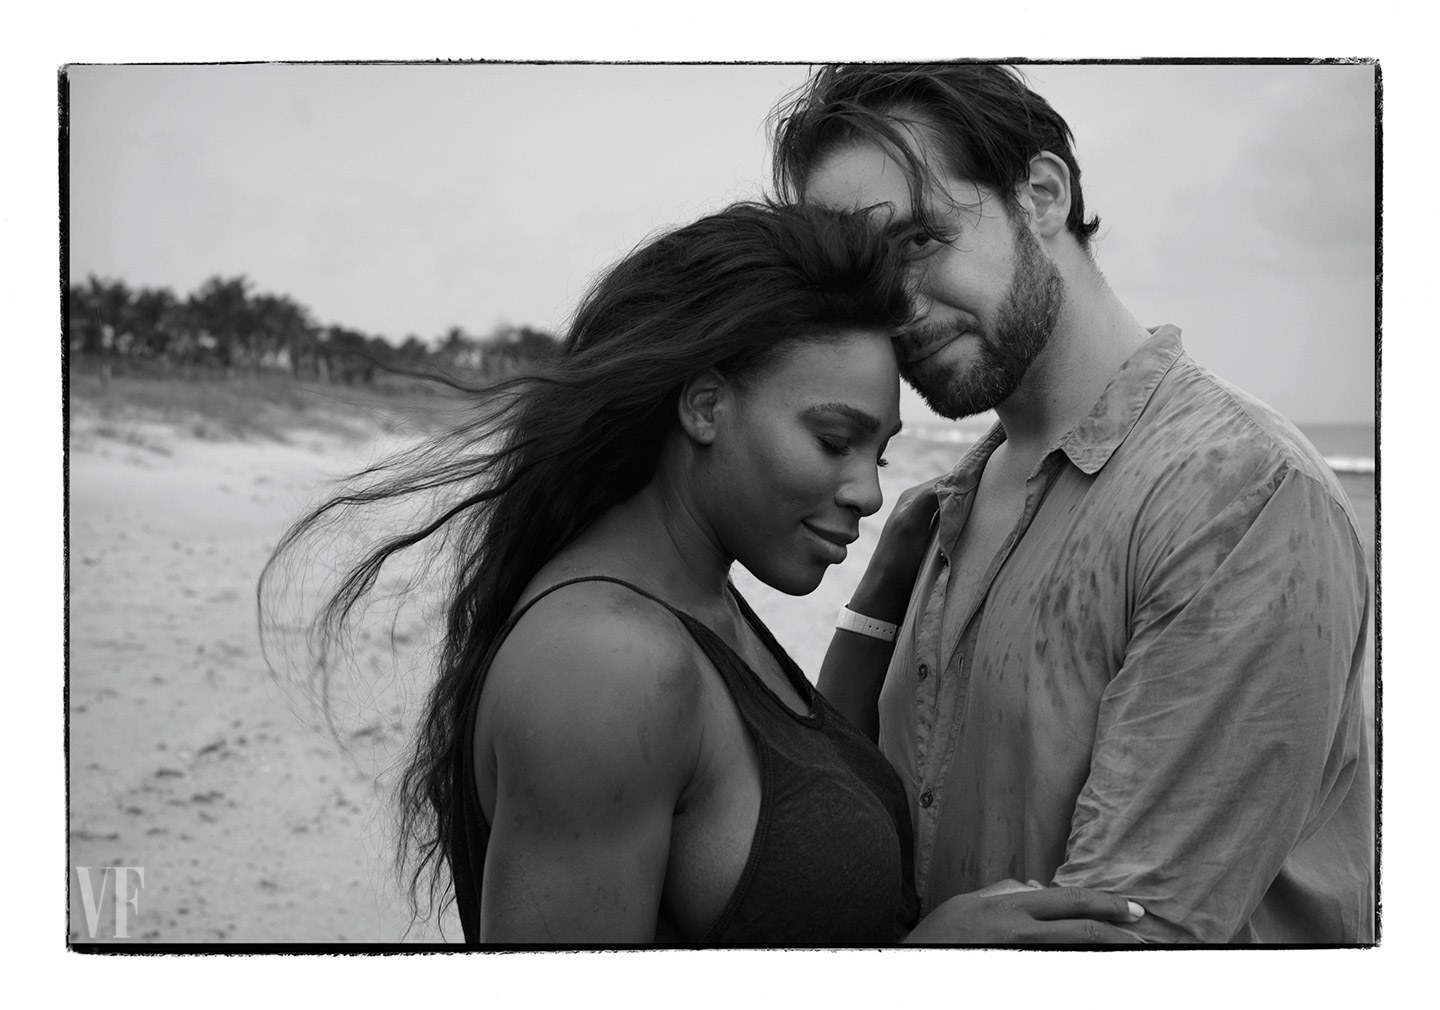 Serena Williams Covers Vanity Fair Magazine August issue Nude with her Baby Bump